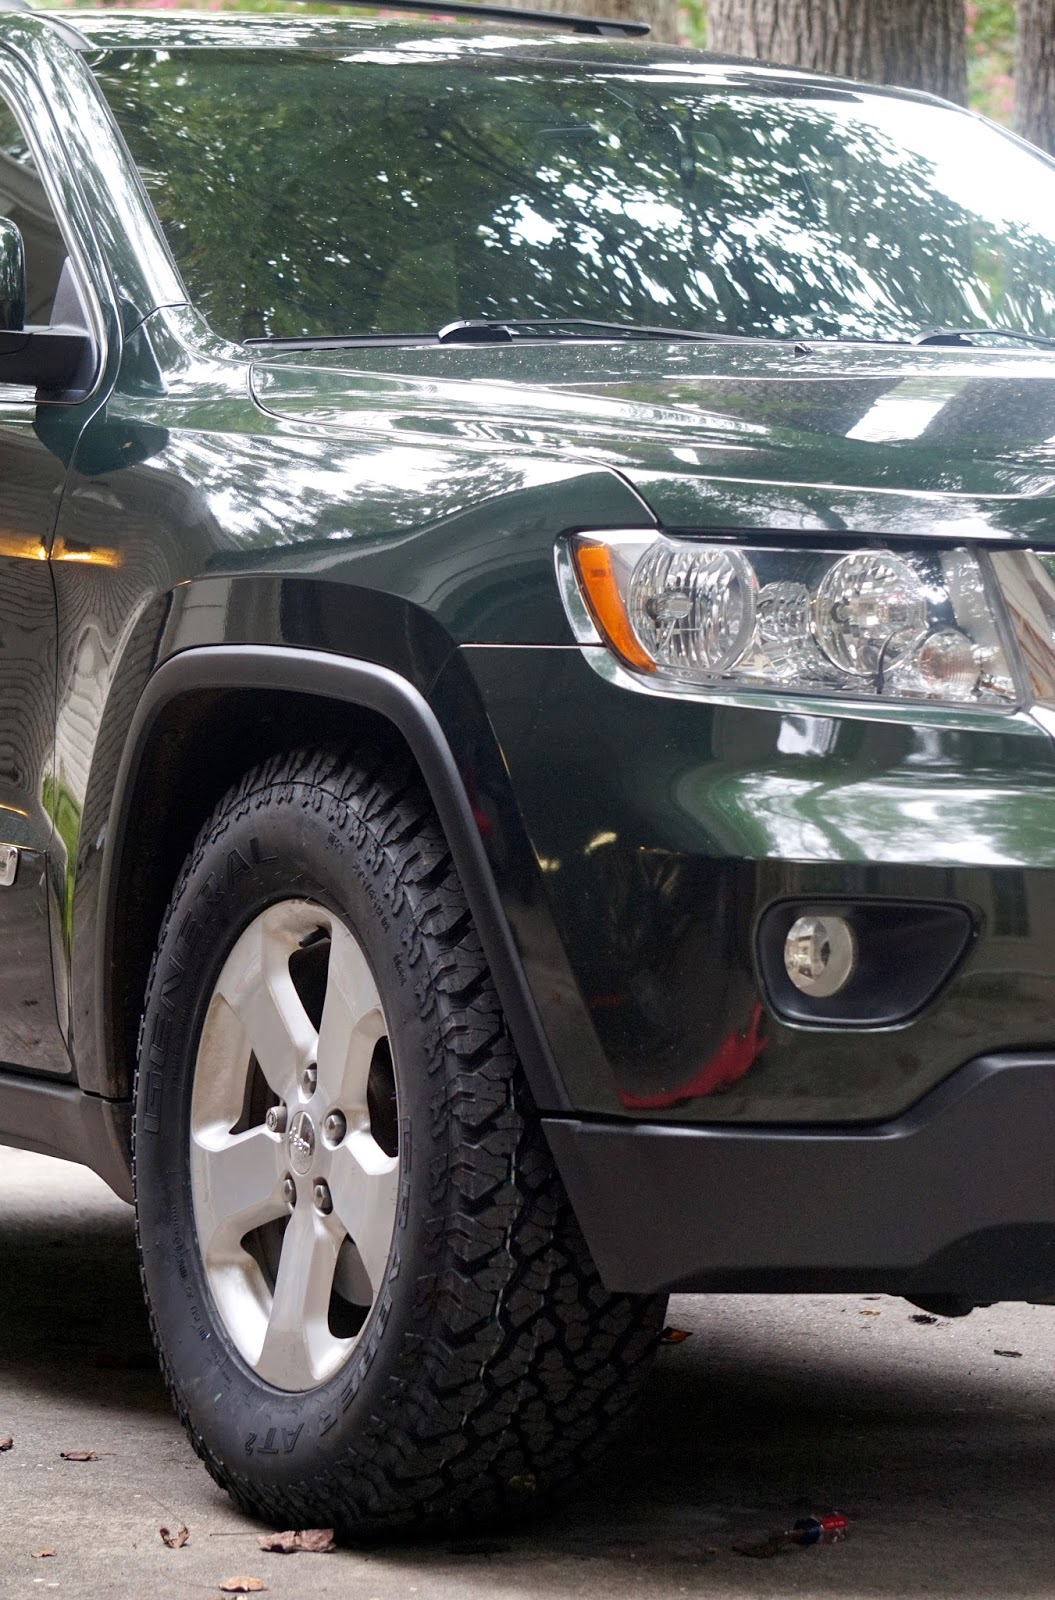 Jeep Wrangler Hemi >> Tire-Wheel Fitment Reports and Summary - Page 2 - JeepForum.com